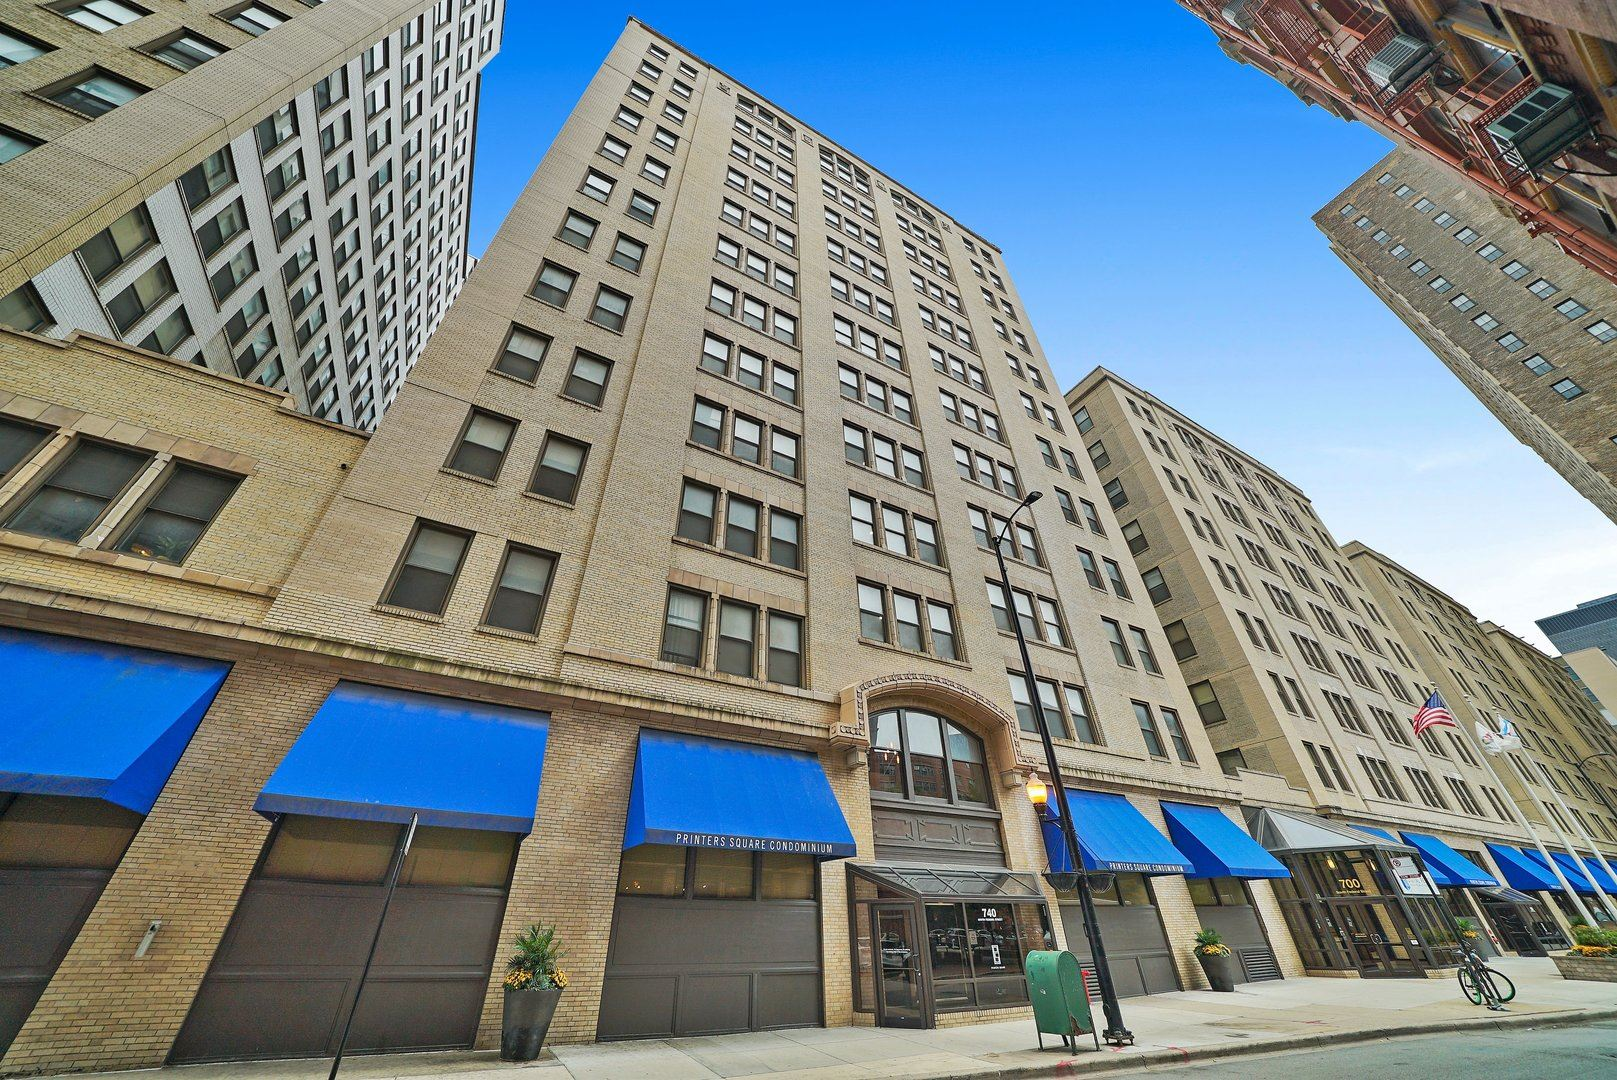 740 S FEDERAL Street #201, Chicago, IL 60605 - #: 11253756